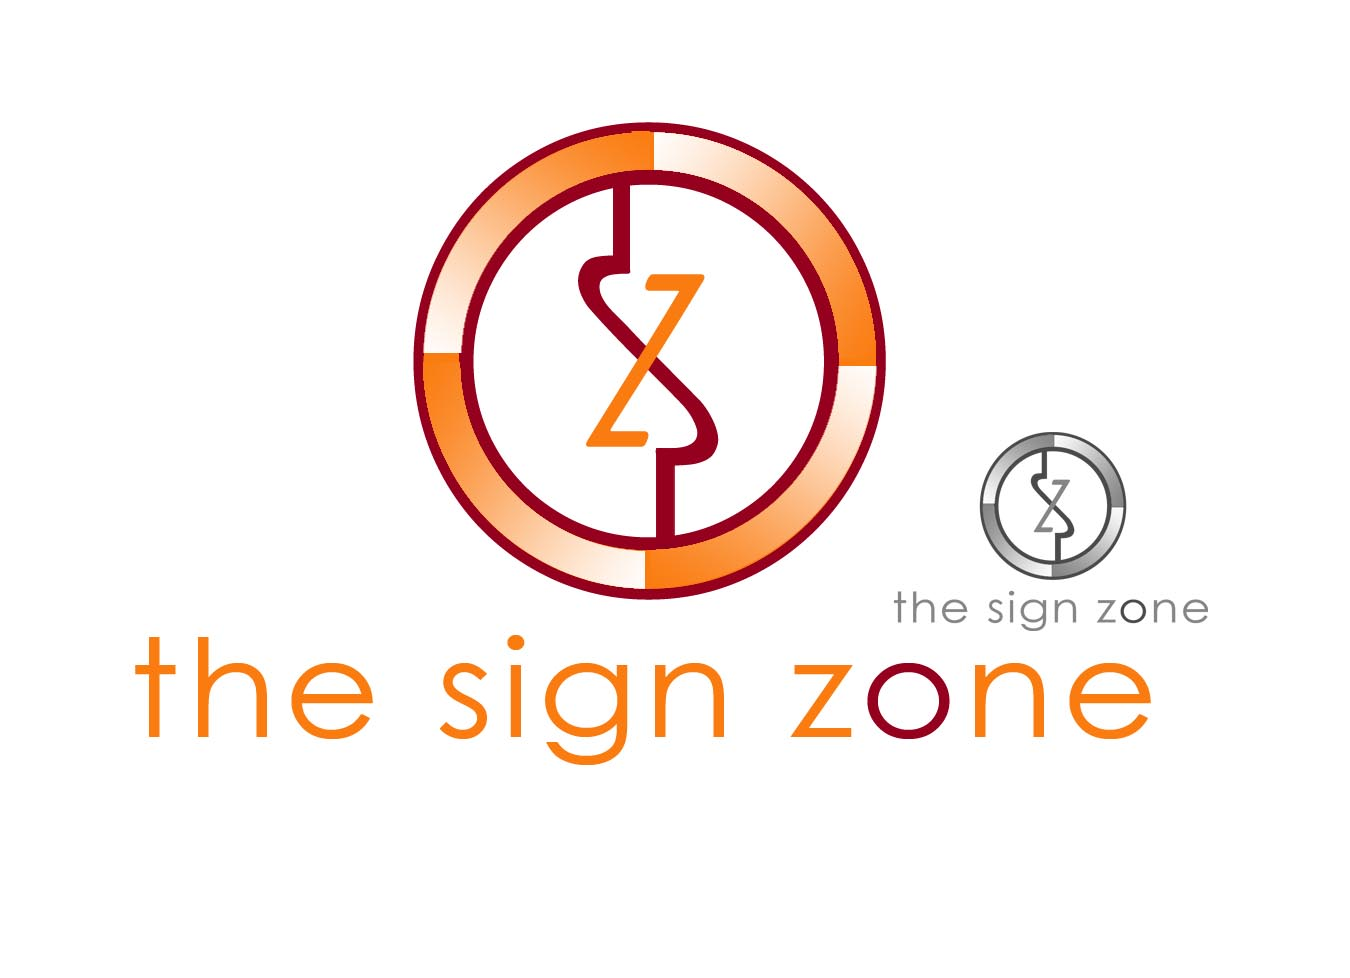 Logo Design by Cesar III Sotto - Entry No. 73 in the Logo Design Contest Fun Logo Design for The Sign Zone.